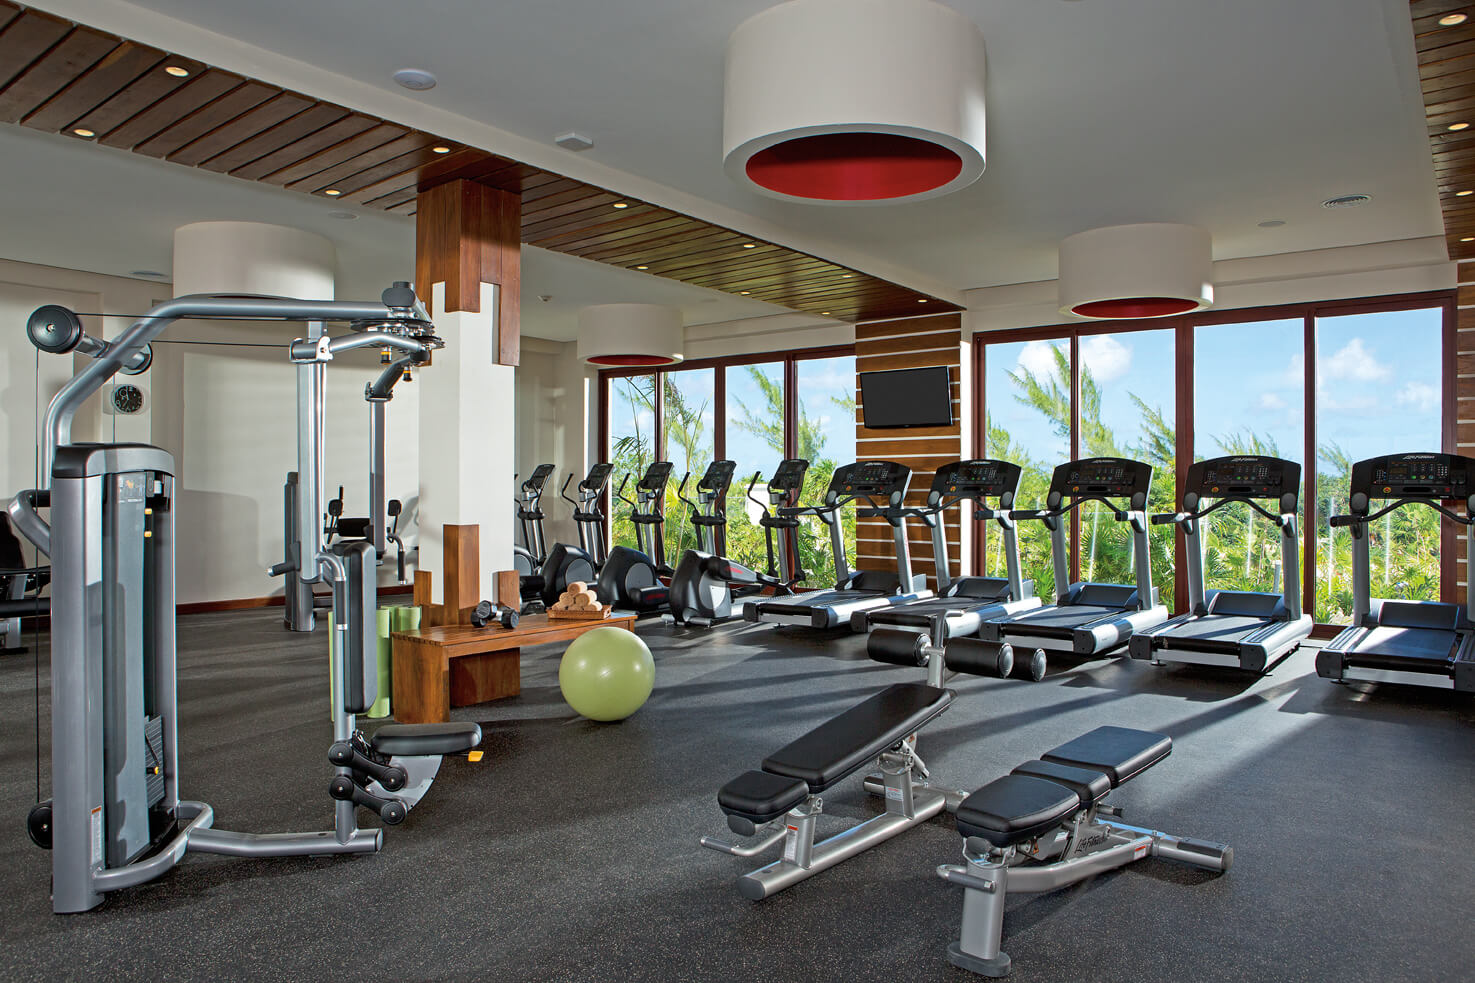 gym area with treadmills and tropical views at the Secrets Playa Mujeres